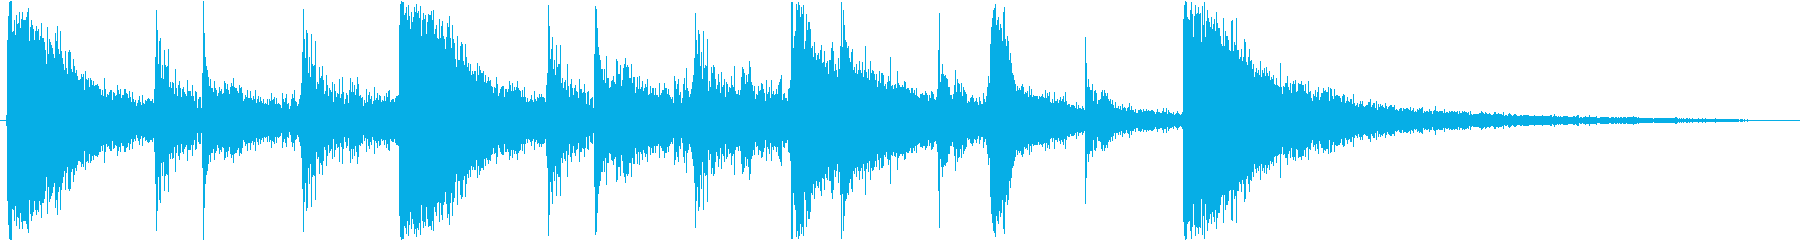 Sound logo, percussion rhythm only's reproduced waveform